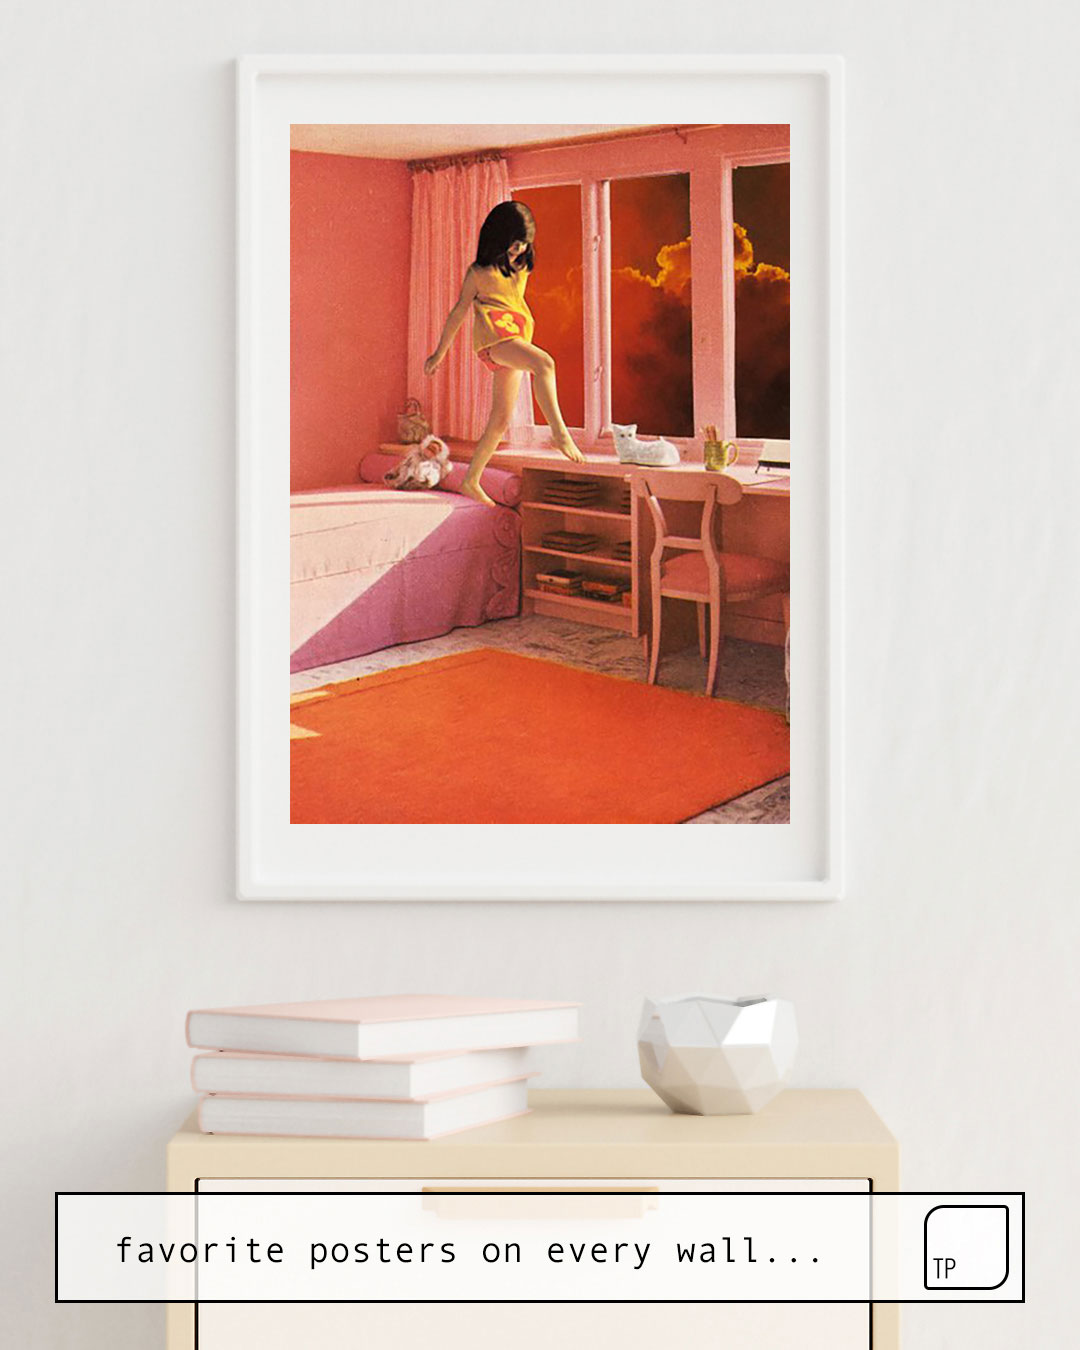 The photo shows an example of furnishing with the motif HOT LAVA by Beth Hoeckel as mural